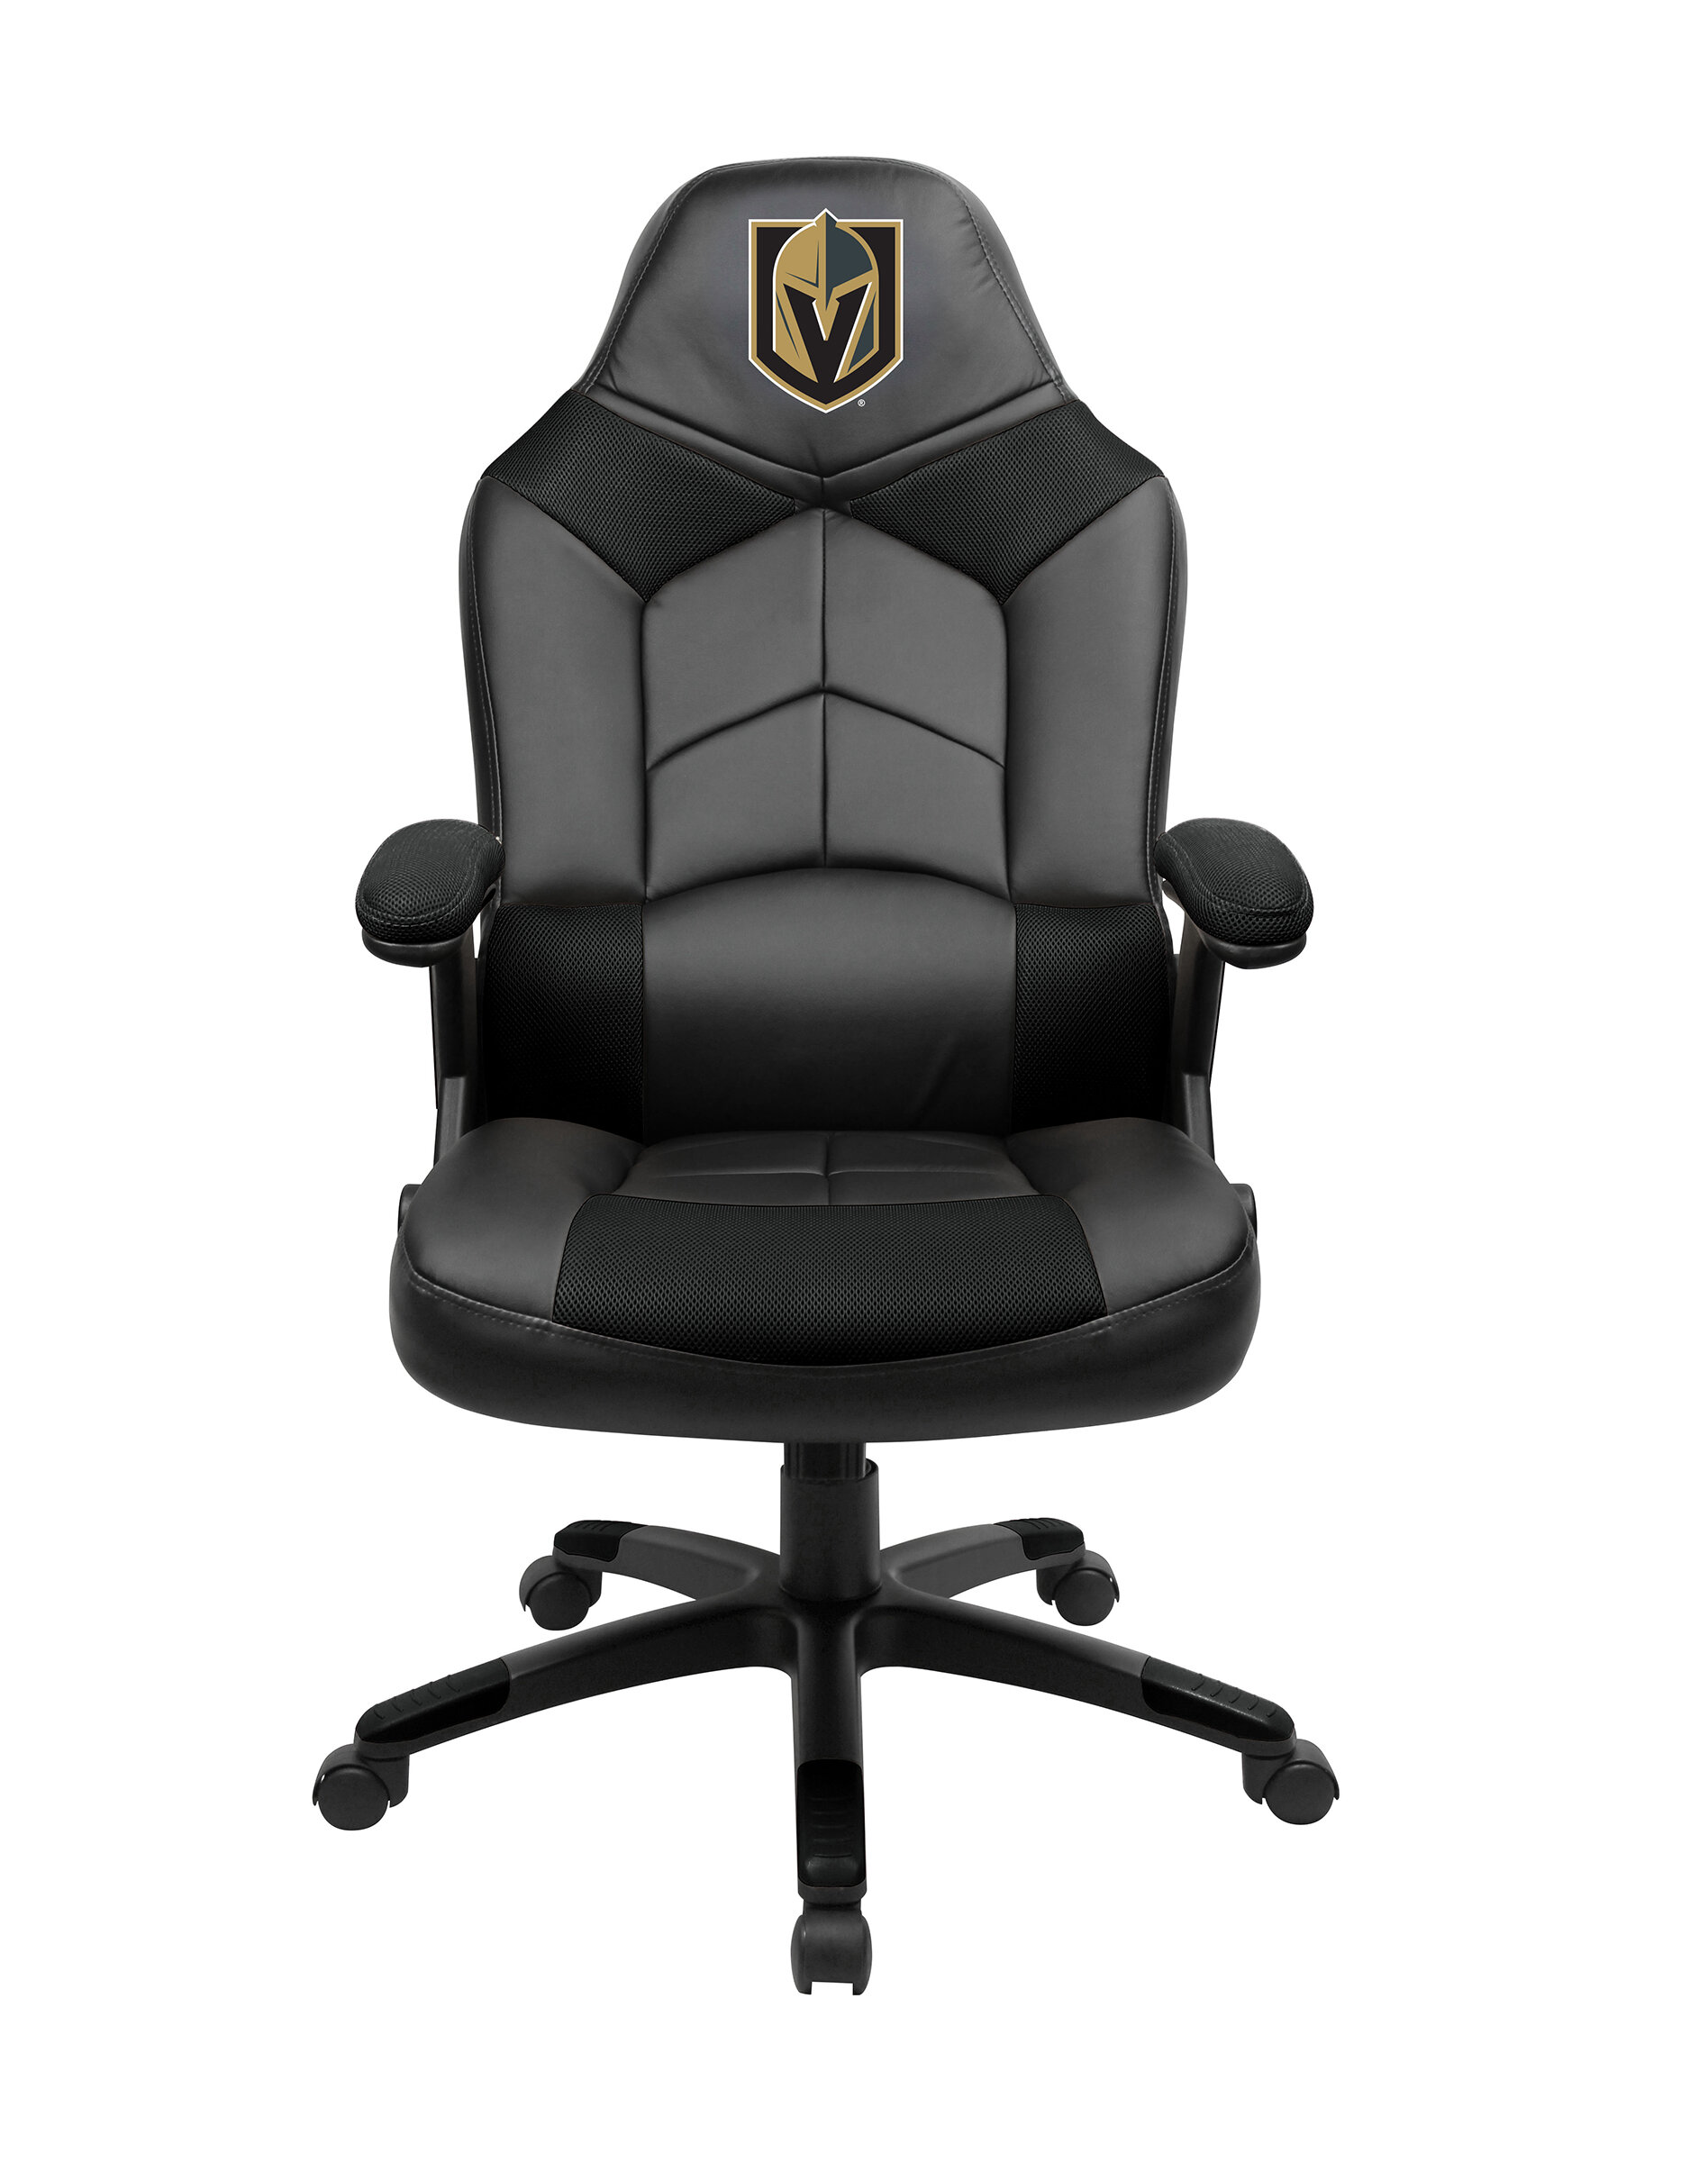 Outstanding Imperial International Nhl Oversized Gaming Chair Wayfair Alphanode Cool Chair Designs And Ideas Alphanodeonline